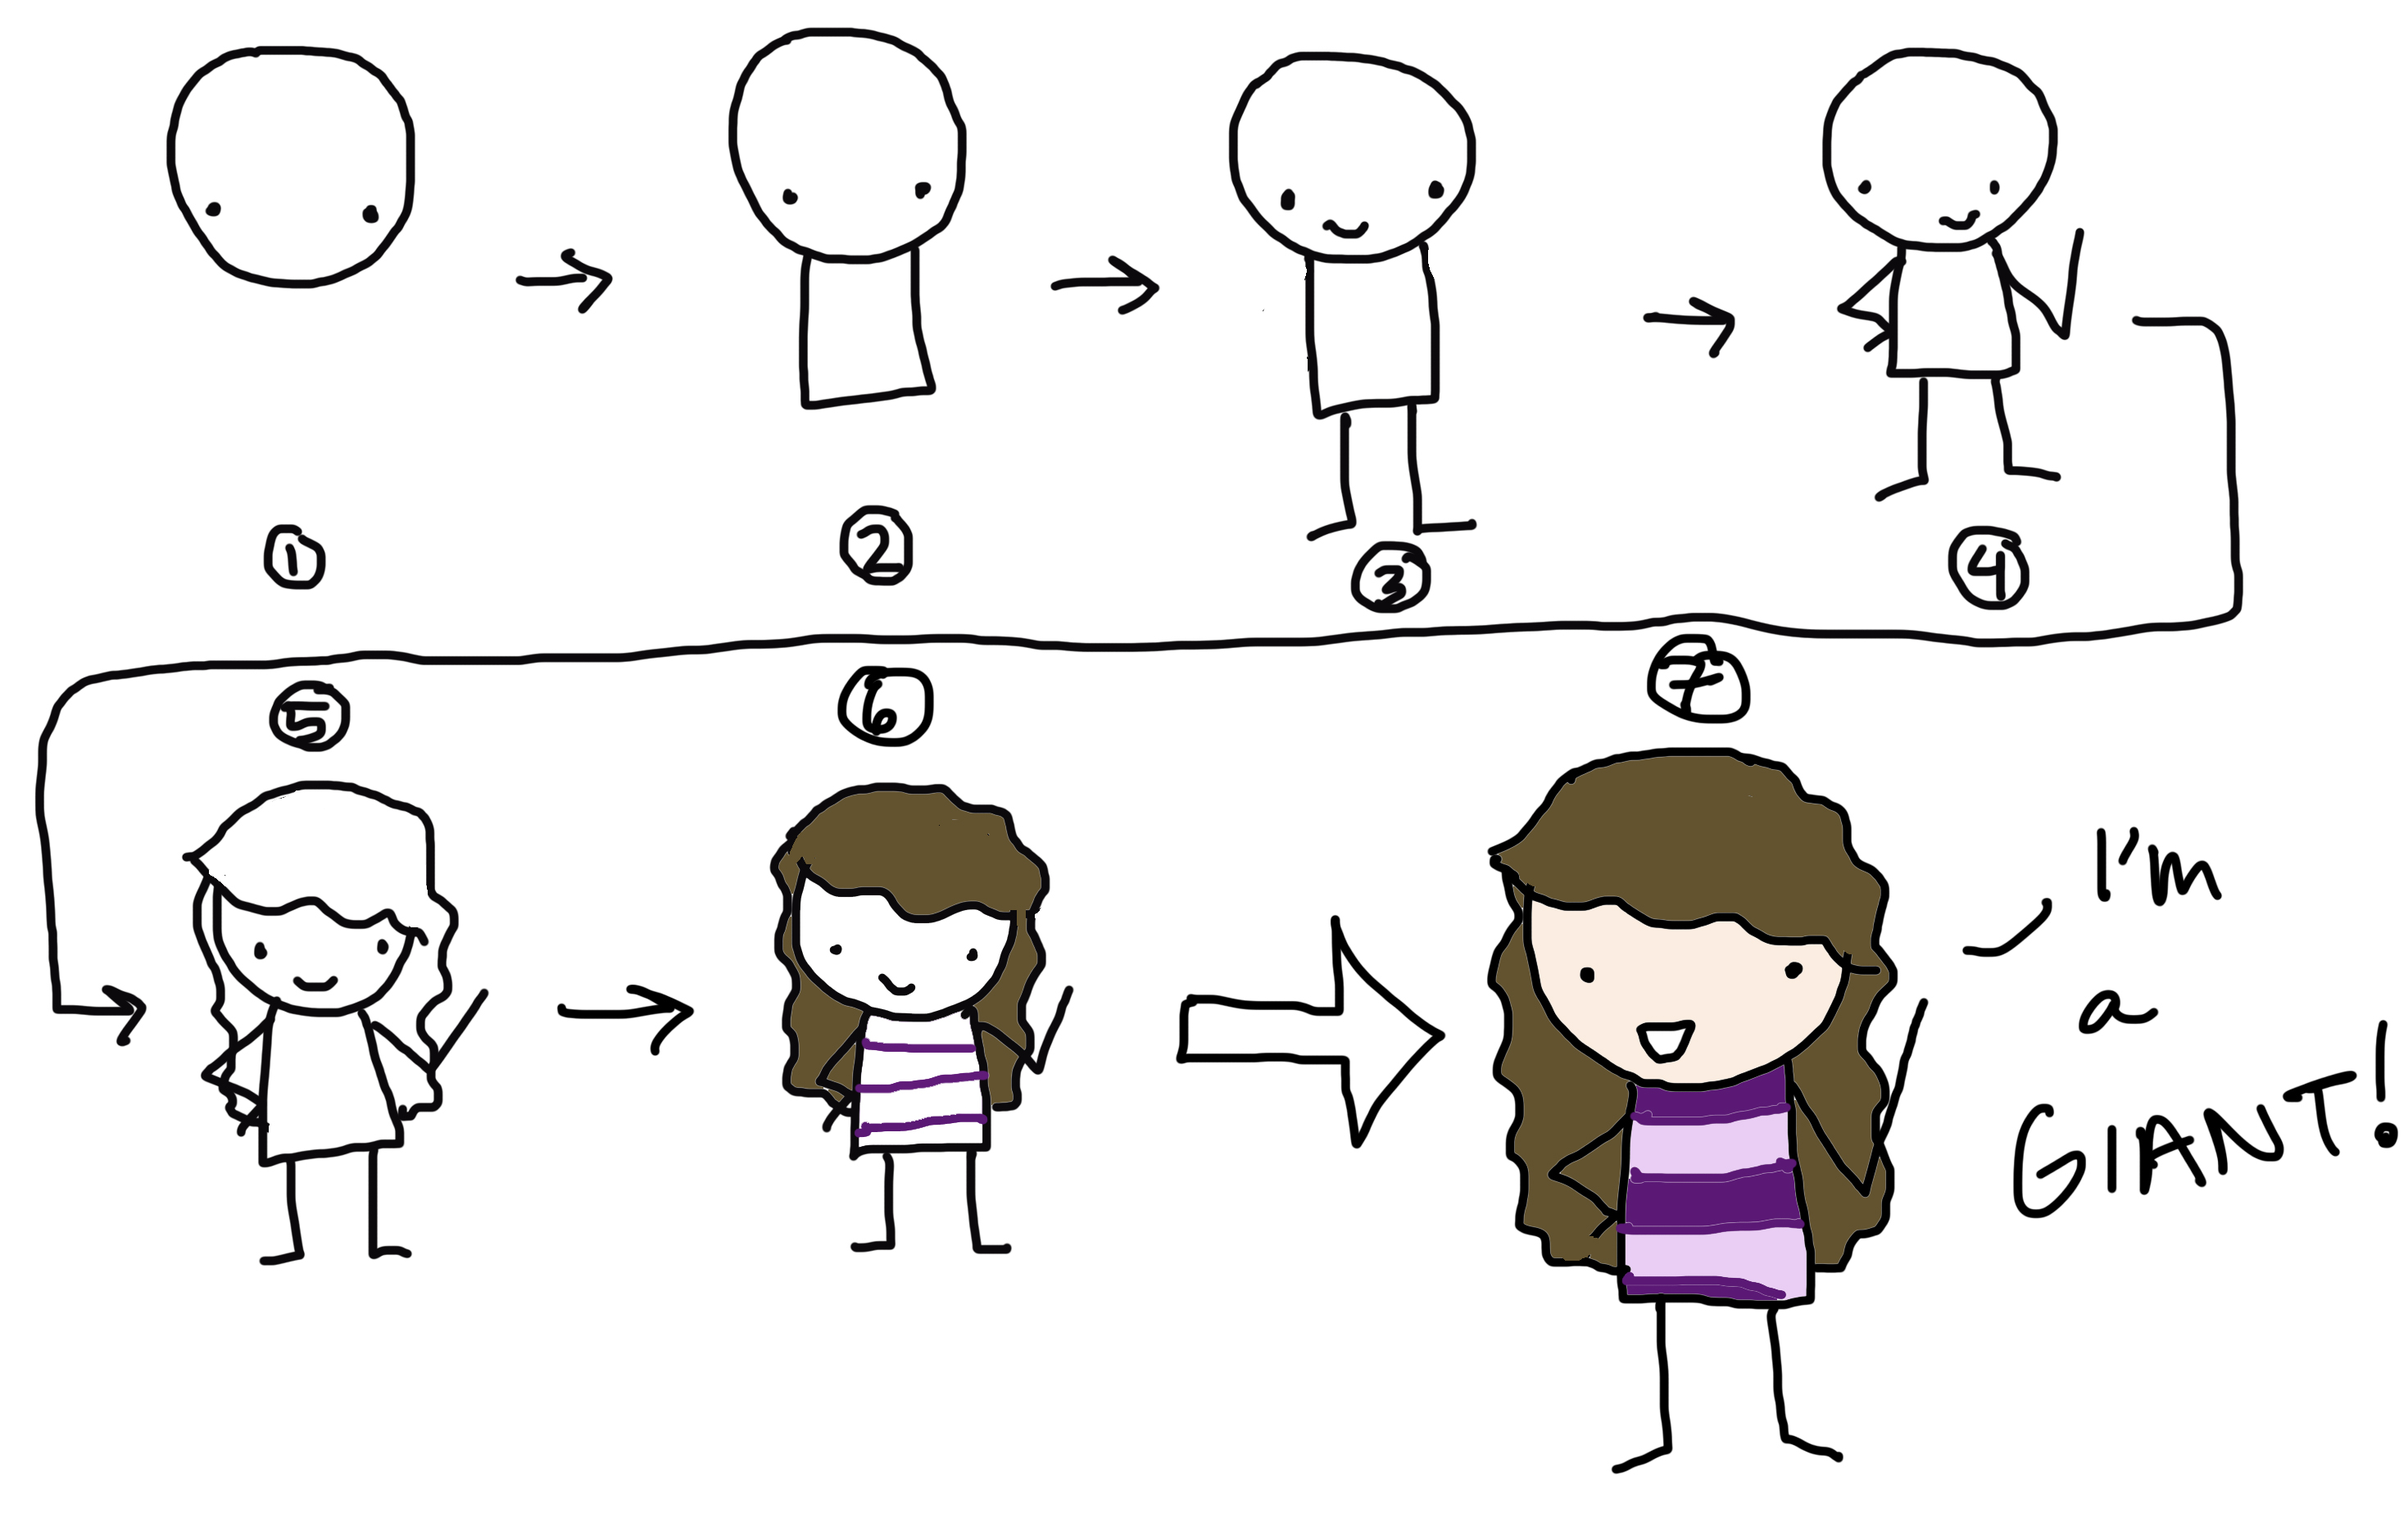 How To Draw Me In 7 Easy Steps From The Wonderful Brain Of Ona